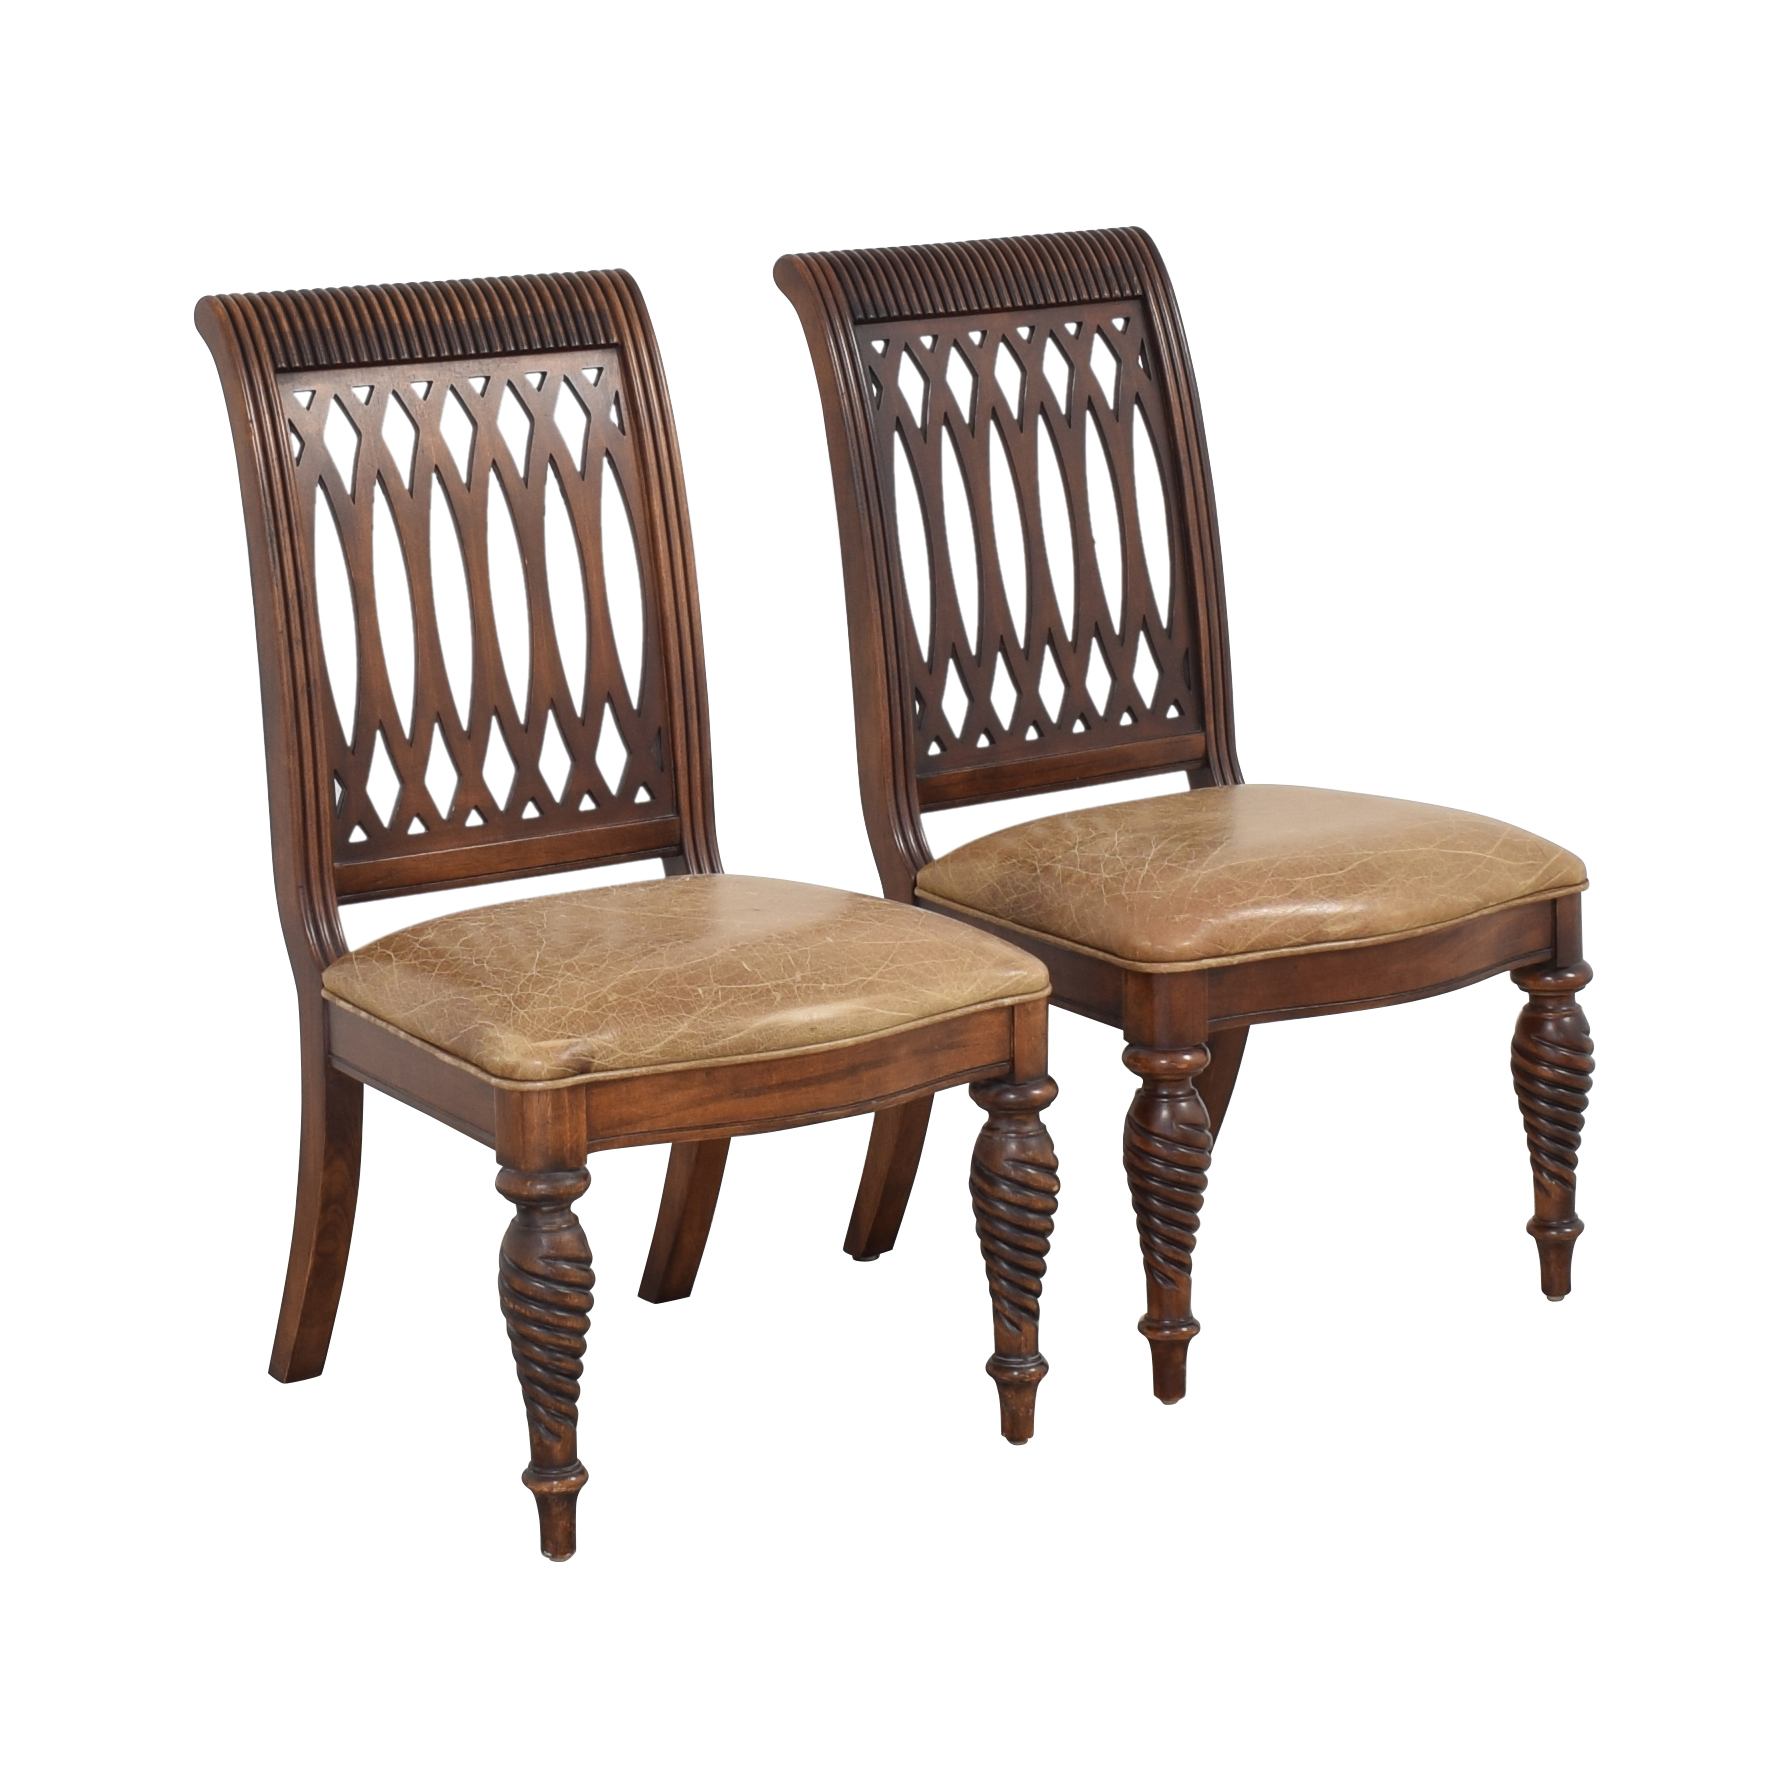 Bernhardt Bernhardt Upholstered Dining Chairs on sale